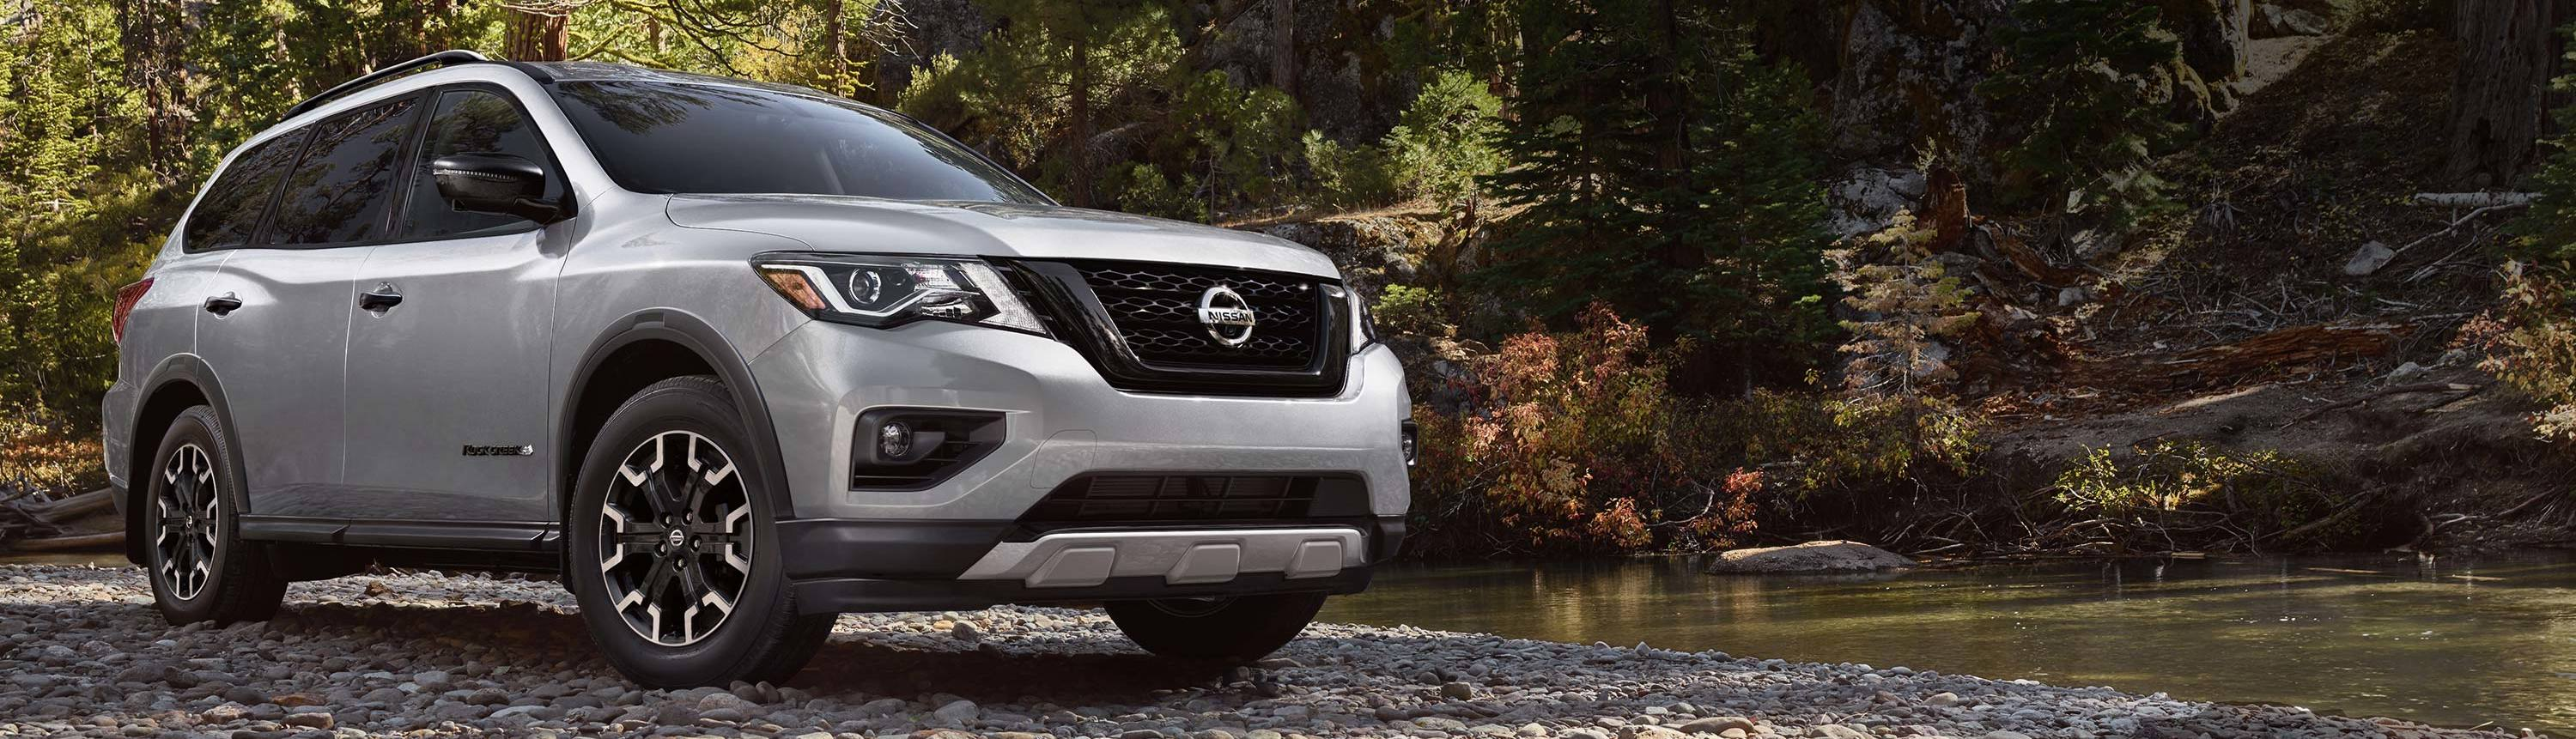 2019 Nissan Pathfinder Leasing in Syosset, NY